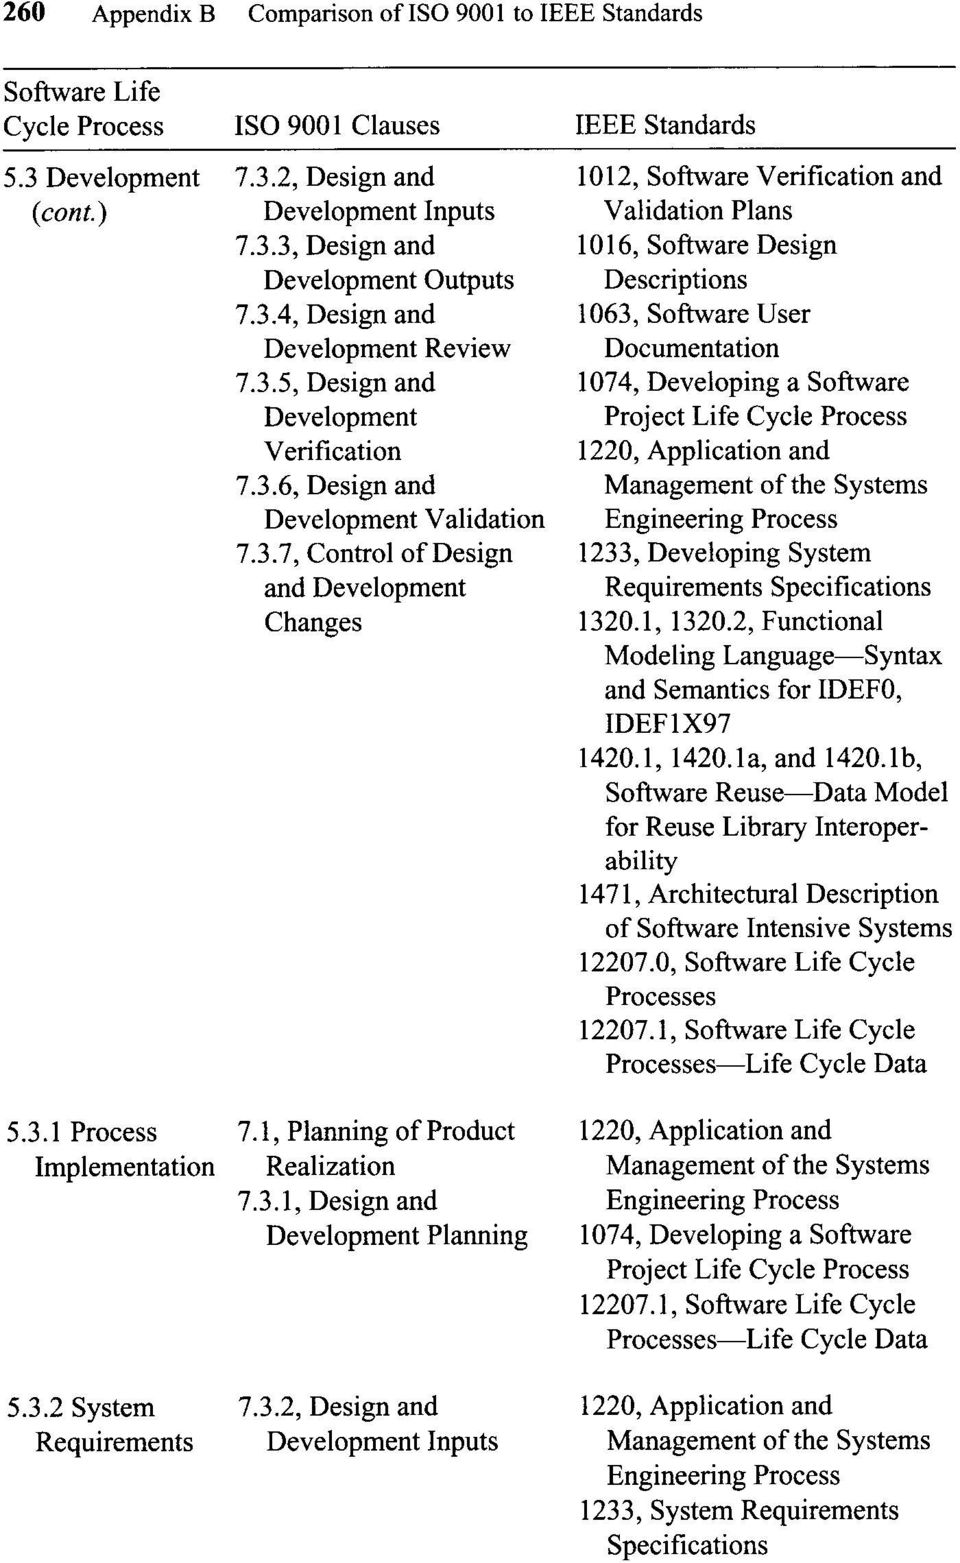 and Management ofthe Systems Engineering Process 1233, Developing System Specifications 1320.1, 1320.2, Functional Modeling Language-Syntax and Semantics for IDEFO, IDEFIX97 1420.1, 1420.1a, and 1420.